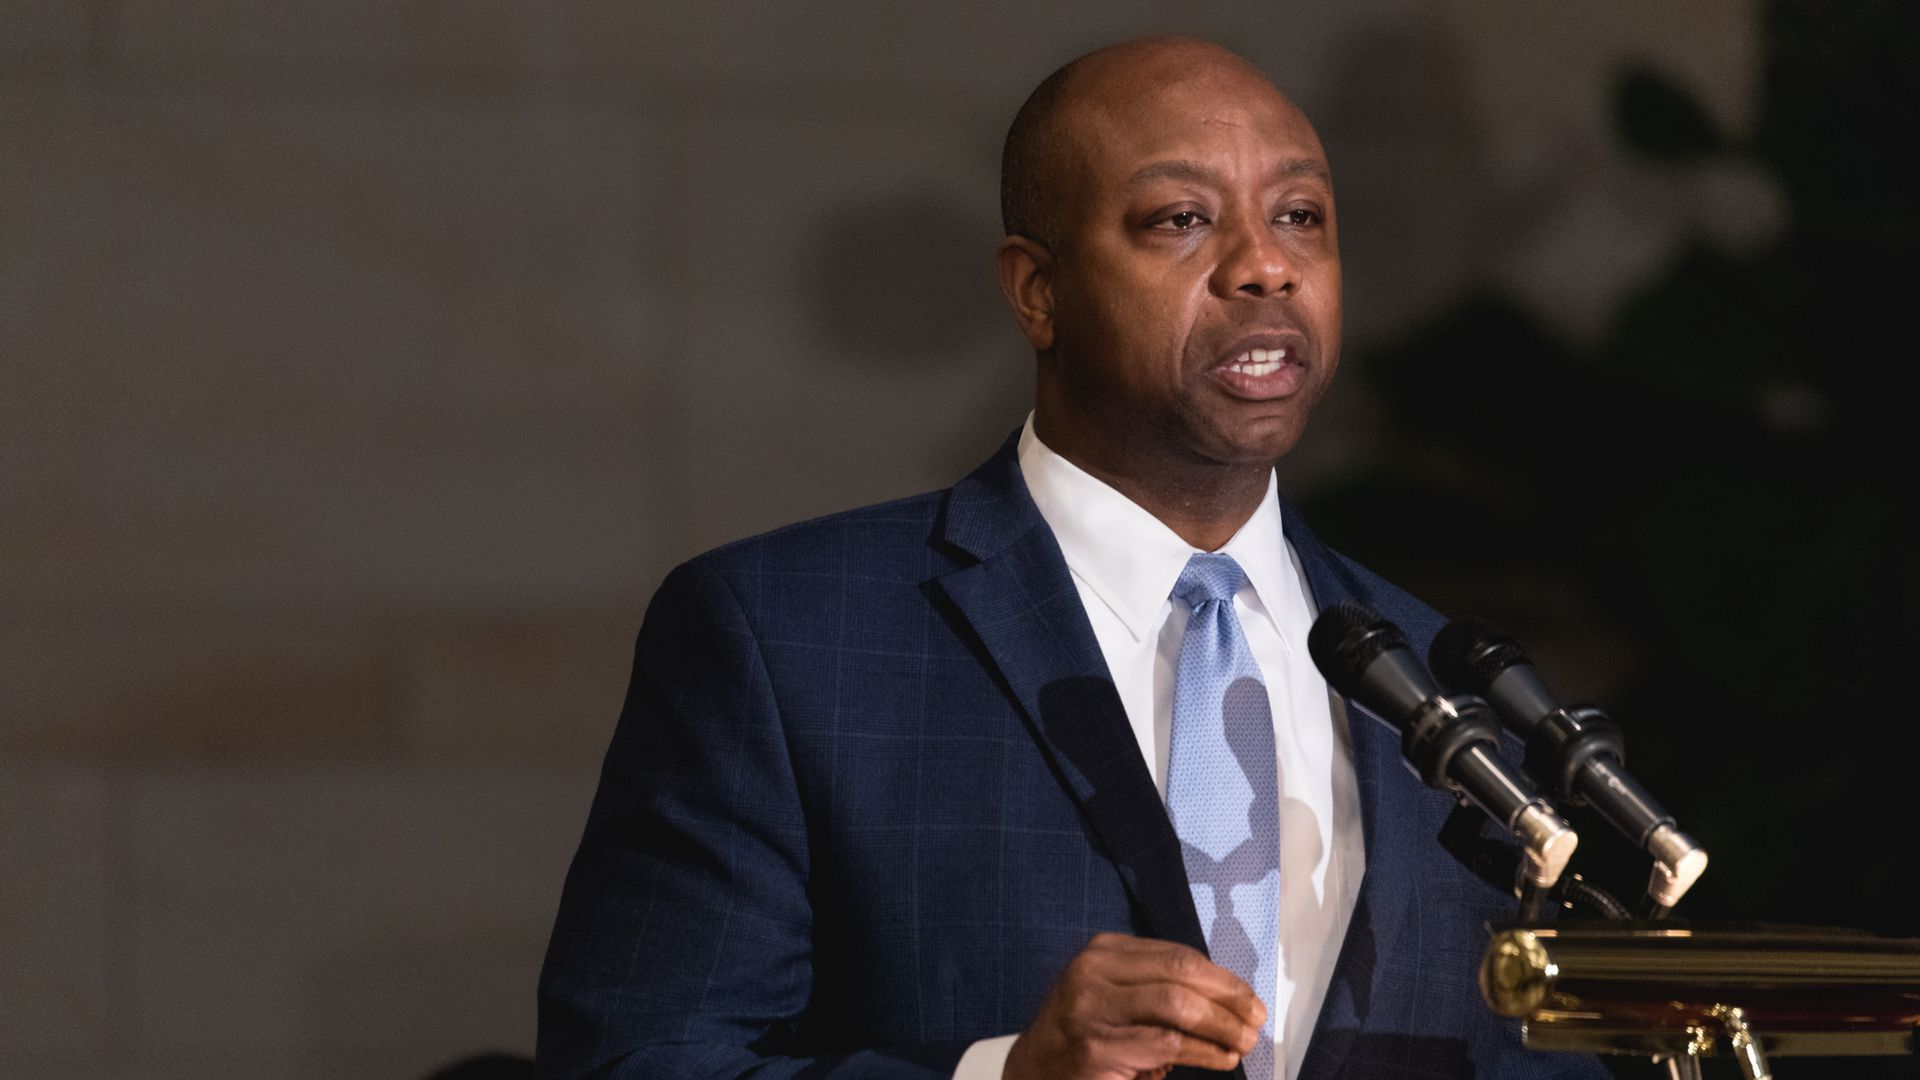 Sen. Tim Scott speaks at a podium which holds two microphones